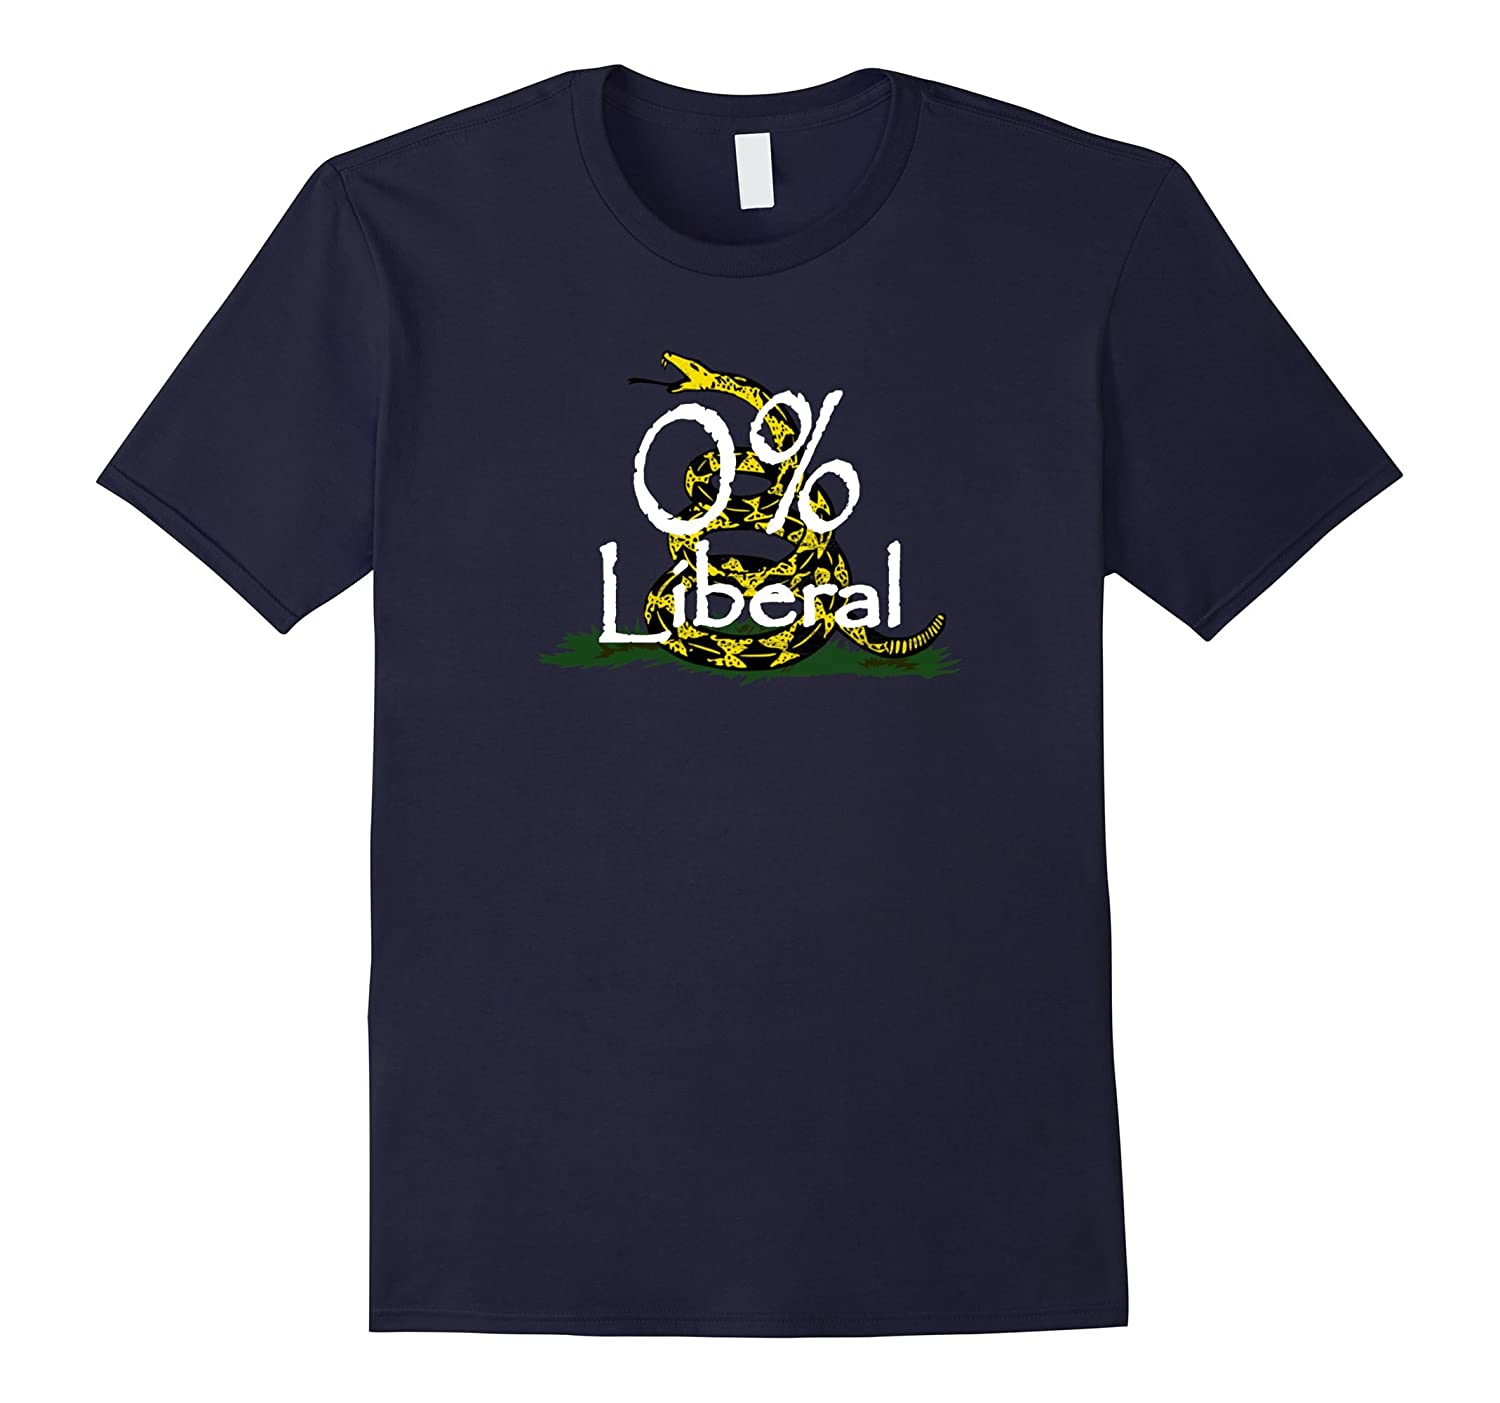 0 Percent Anti-Snowflake Liberal Funny Conservative T-Shirt-Art